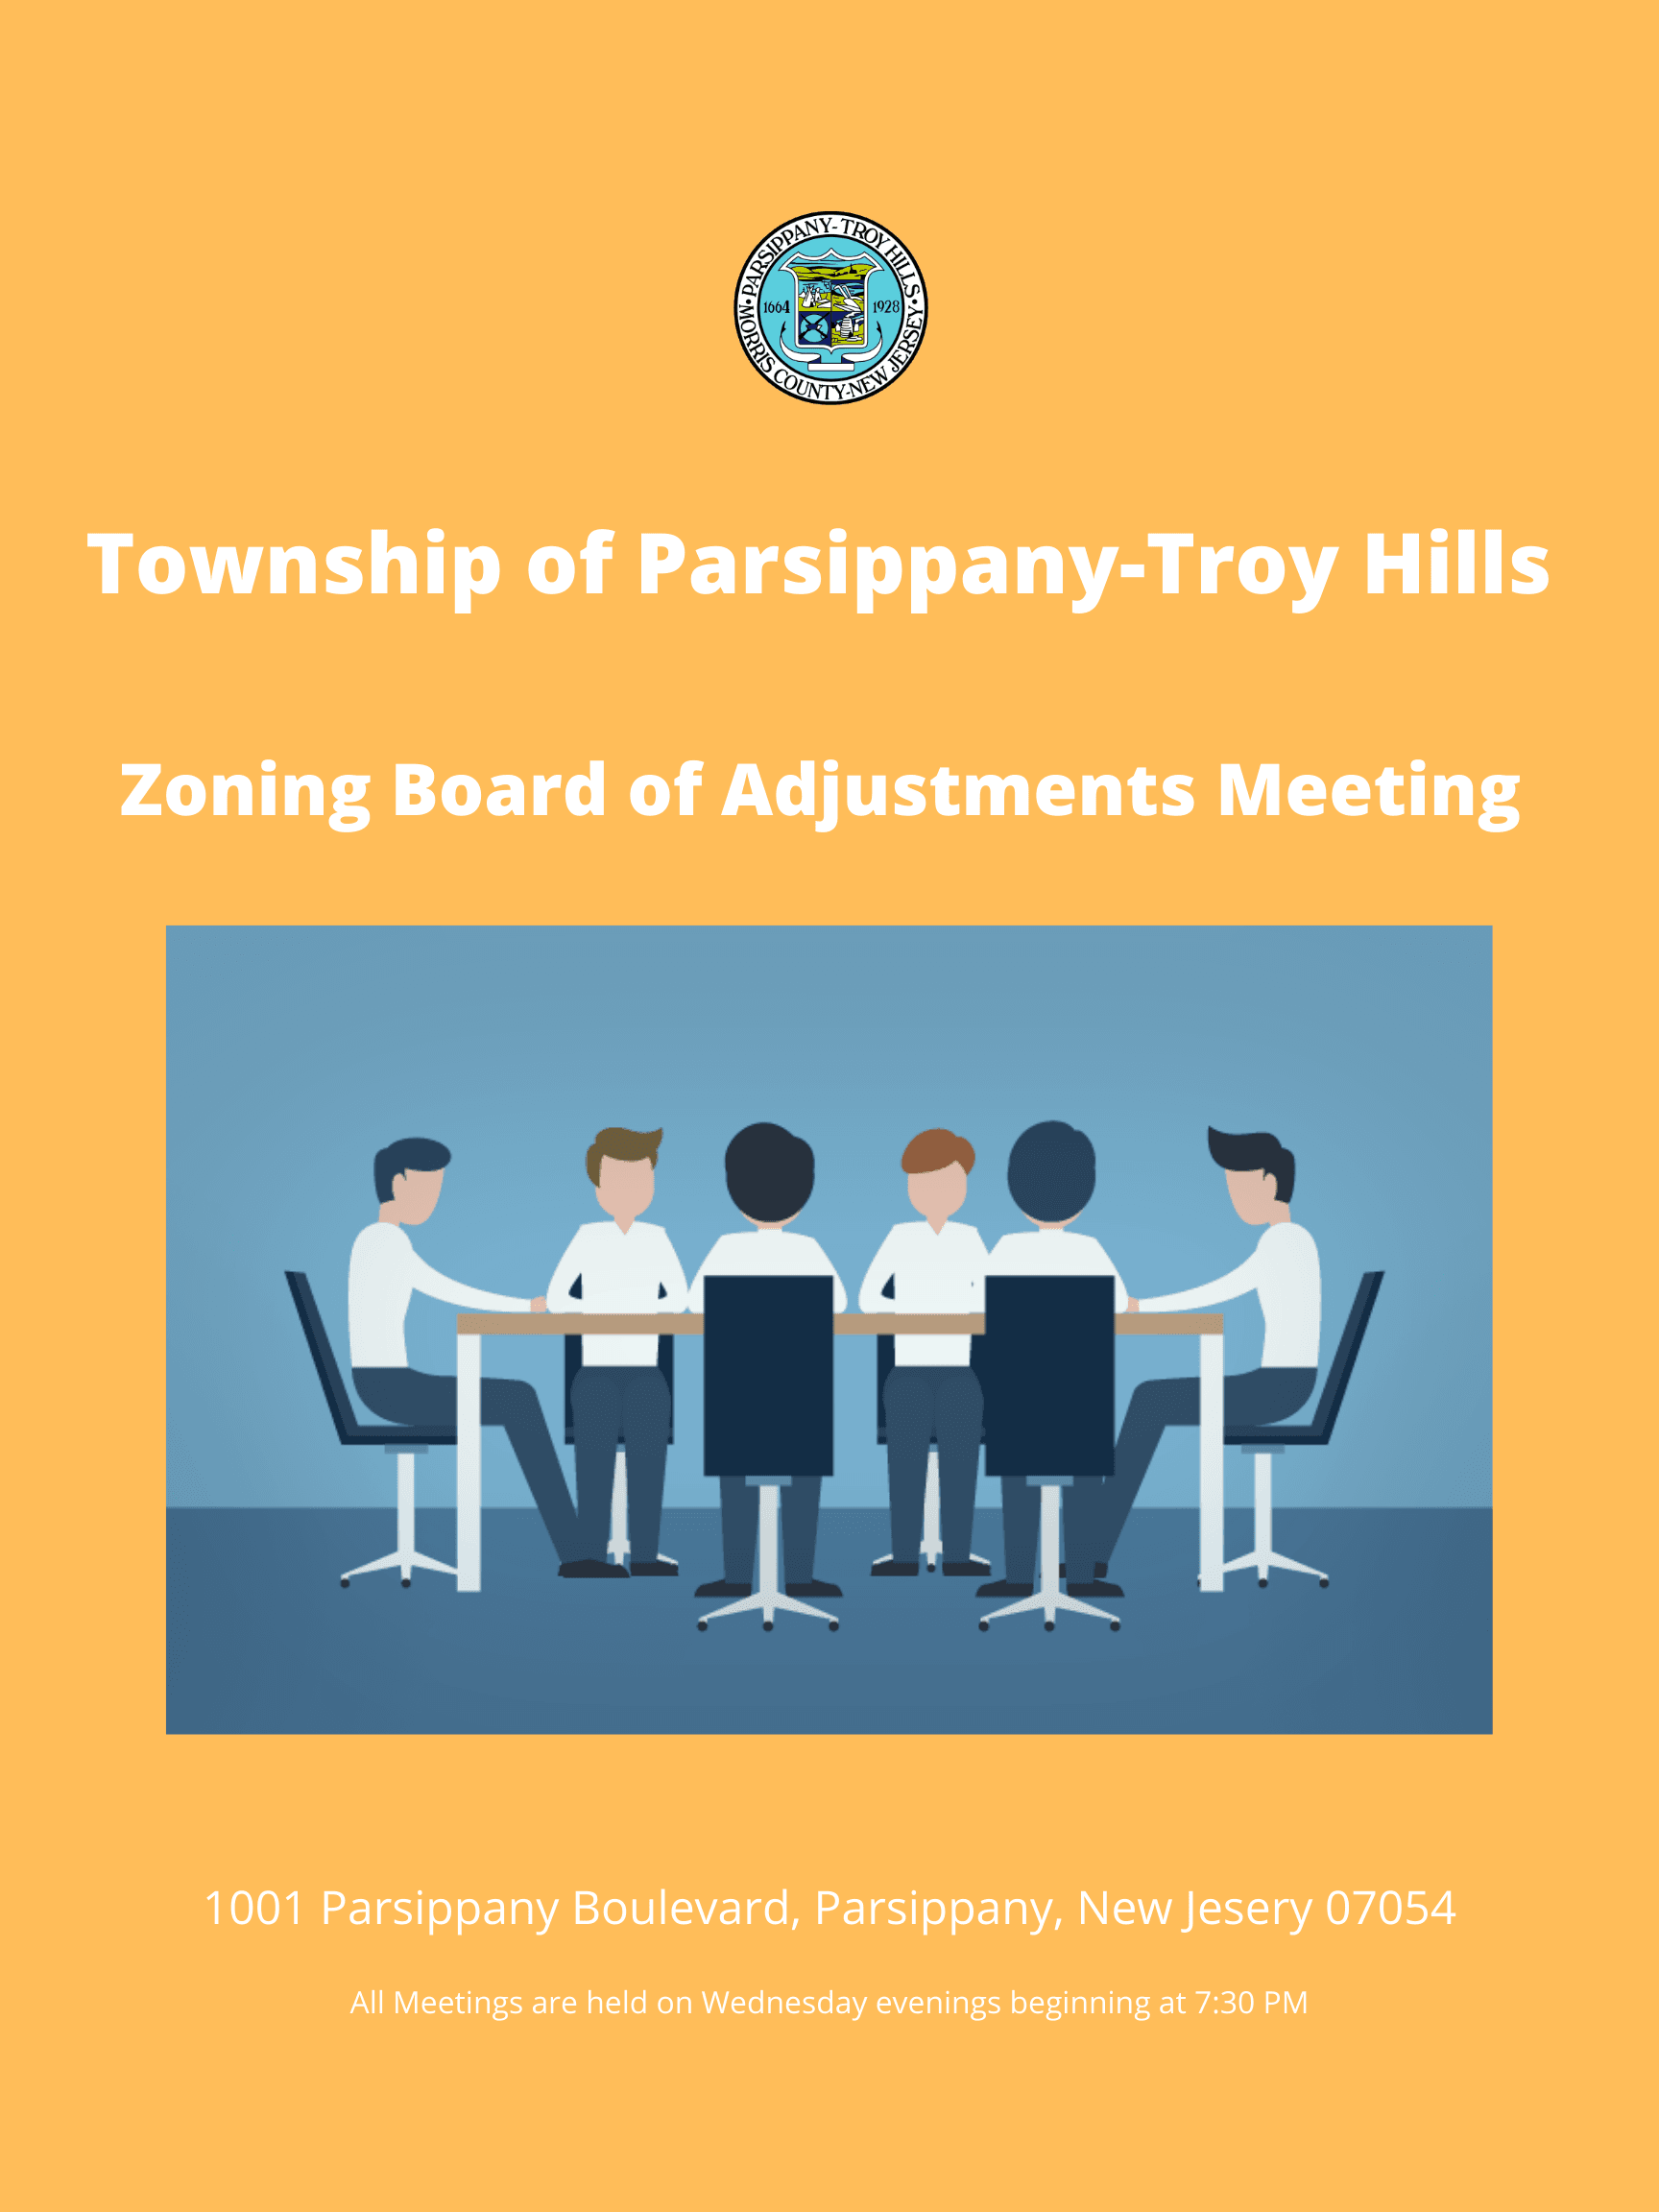 Township of Parsippany-Troy Hills Planning Board Meeting (2)